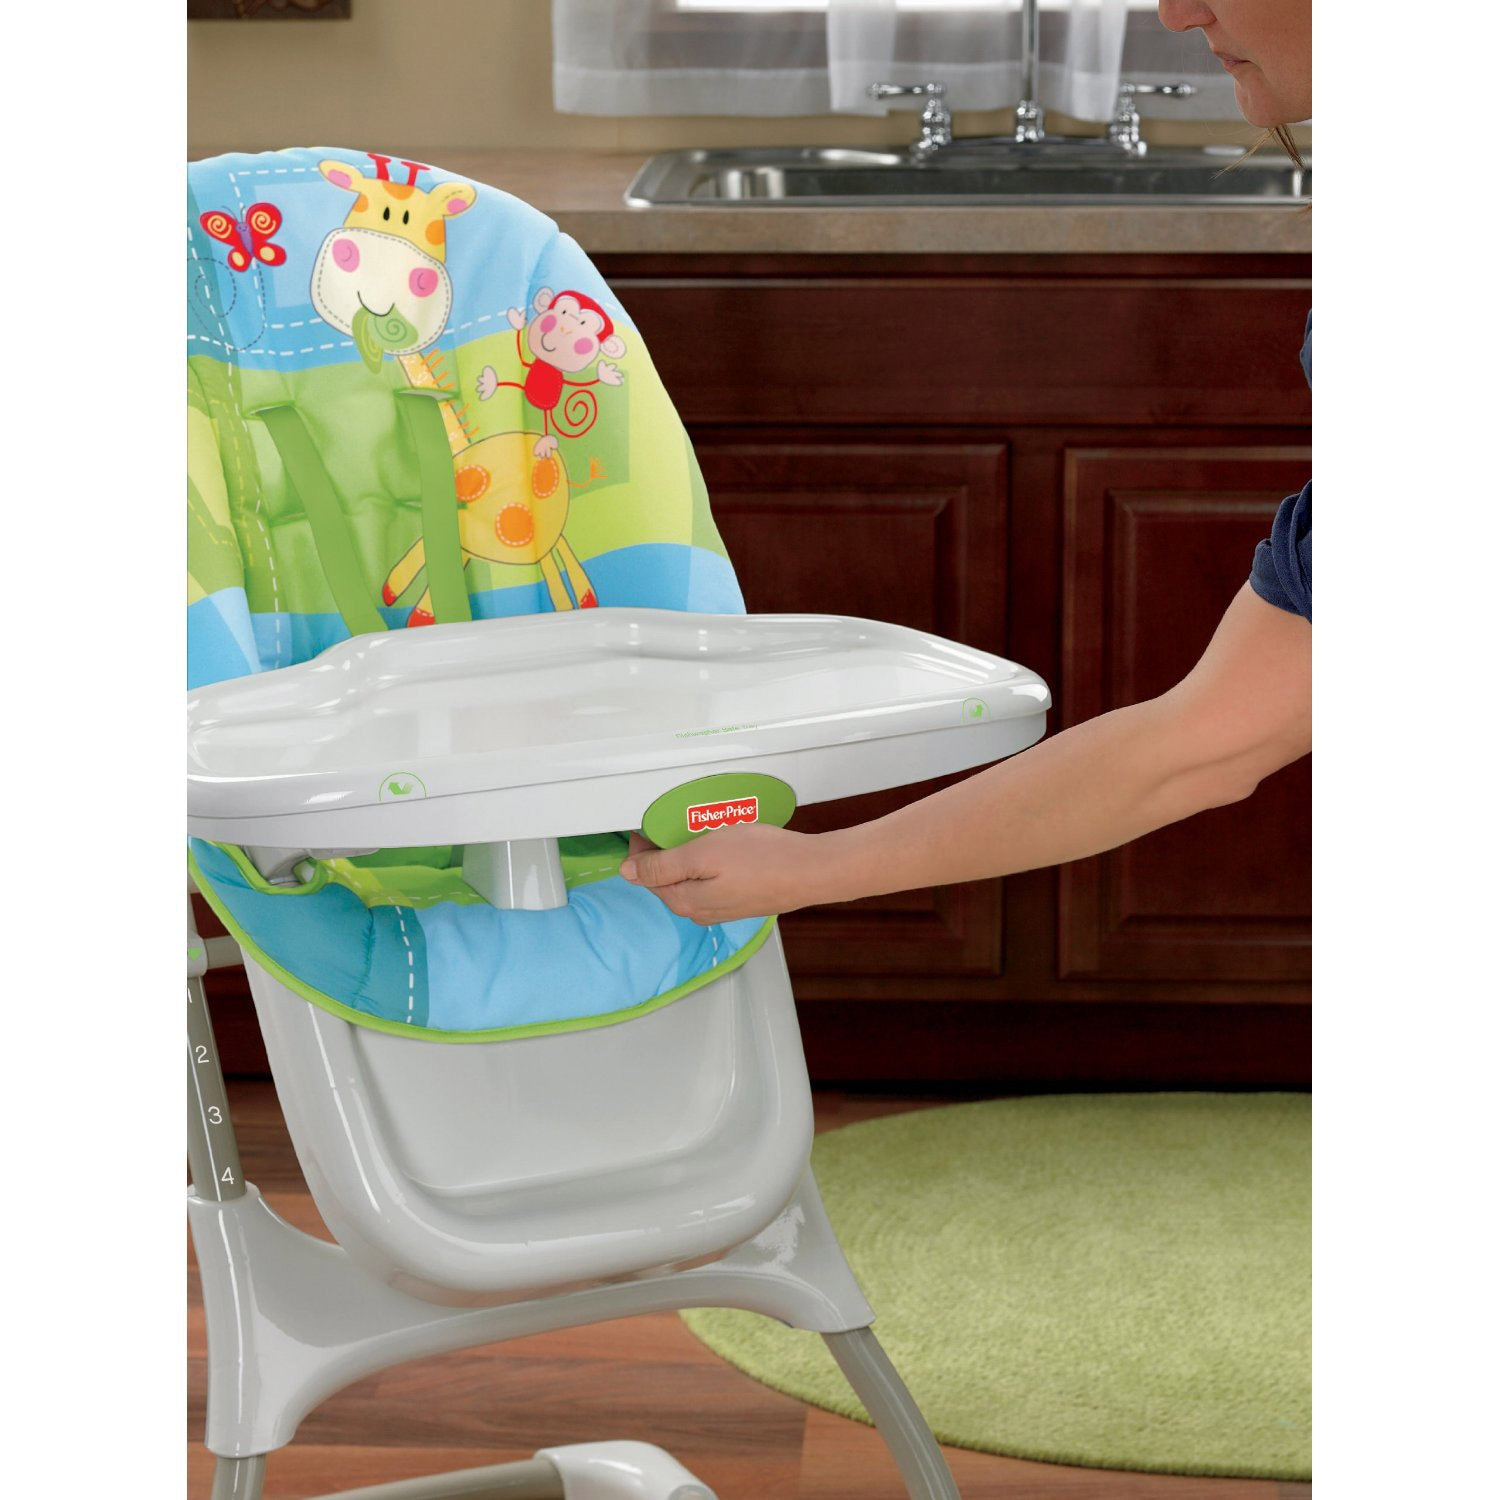 Shop Fisher-Price Discover u0027n Grow EZ Clean High Chair - Ships To Canada - Overstock - 6462750  sc 1 st  Overstock.ca & Shop Fisher-Price Discover u0027n Grow EZ Clean High Chair - Ships To ...